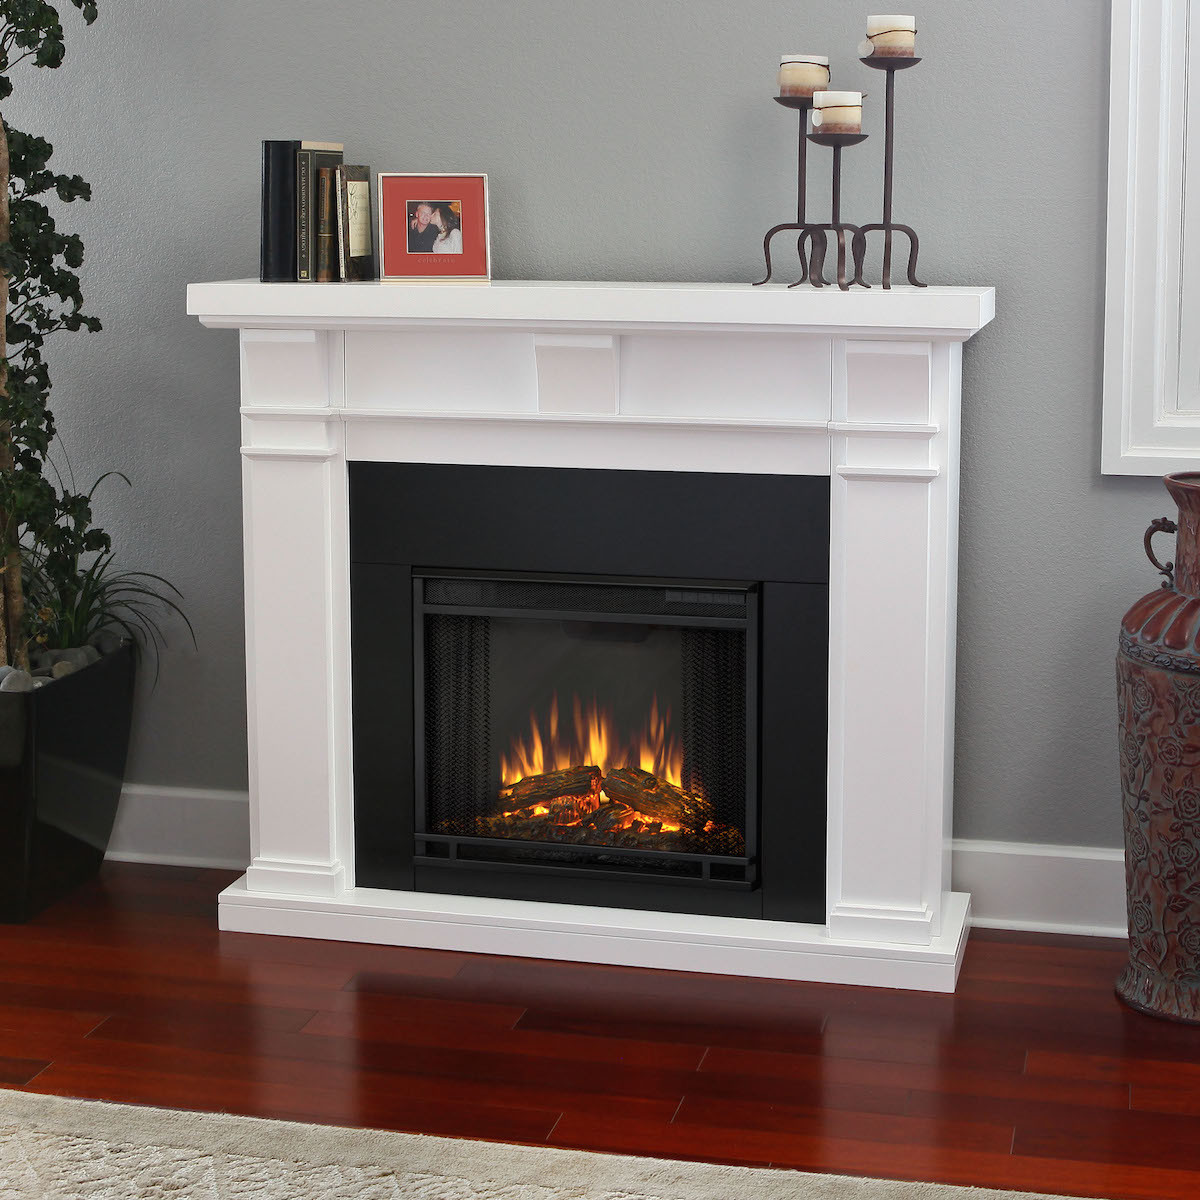 Best ideas about Real Flame Electric Fireplace . Save or Pin Real Flame Porter Electric Fireplace in White Now.